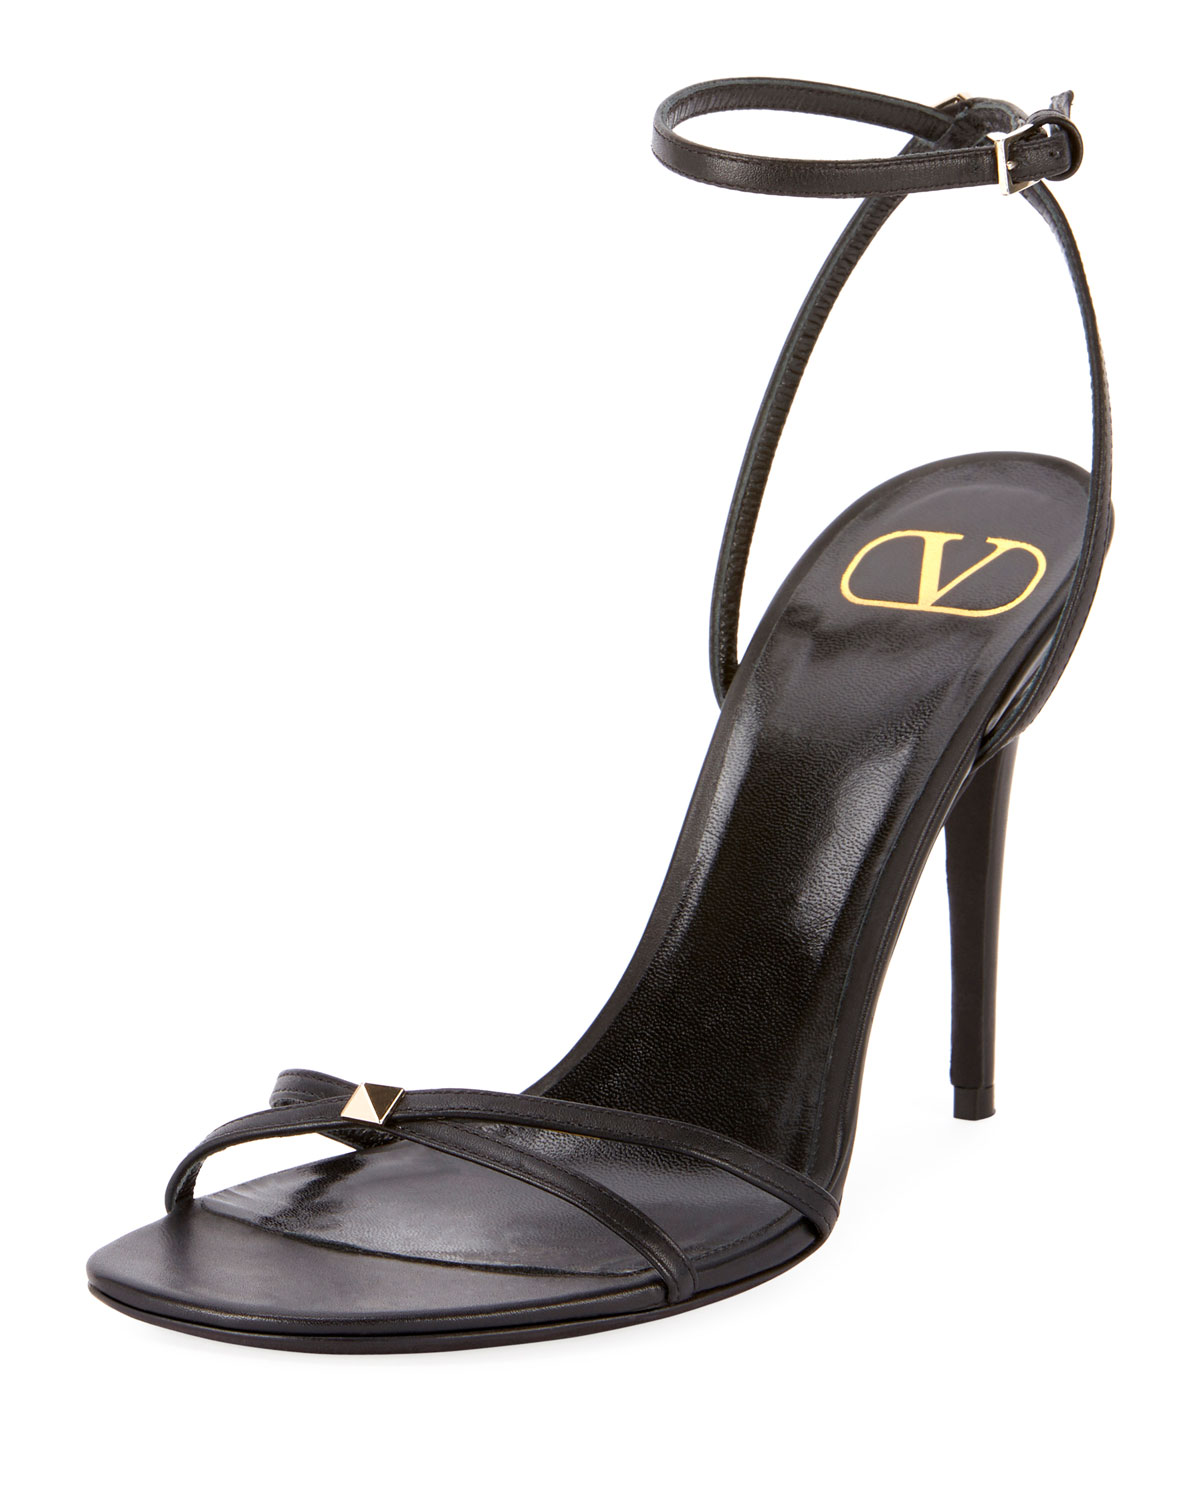 be64f2bc120a Valentino Rockstud Ankle-Strap Sandals In Black